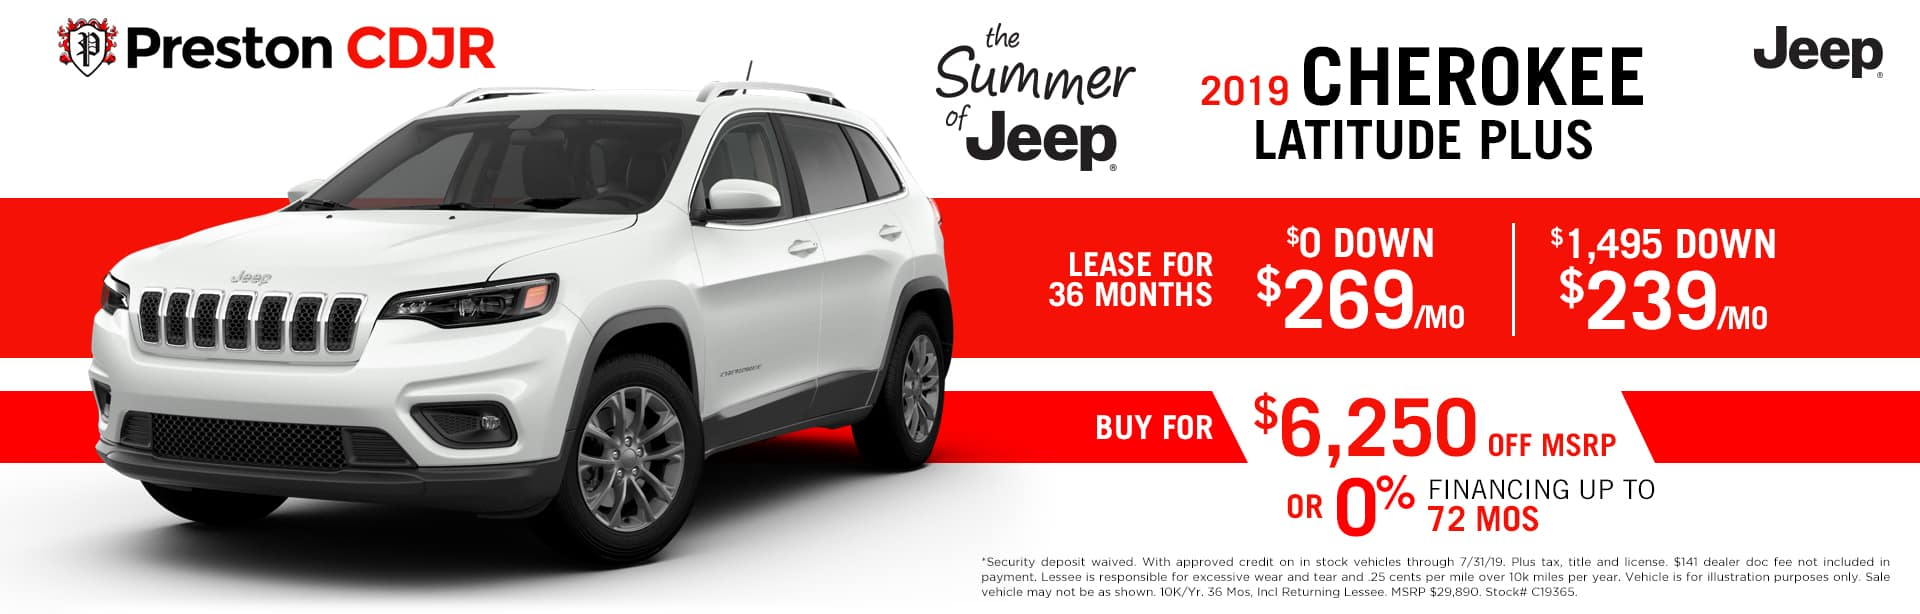 July special on the 2019 Jeep Cherokee